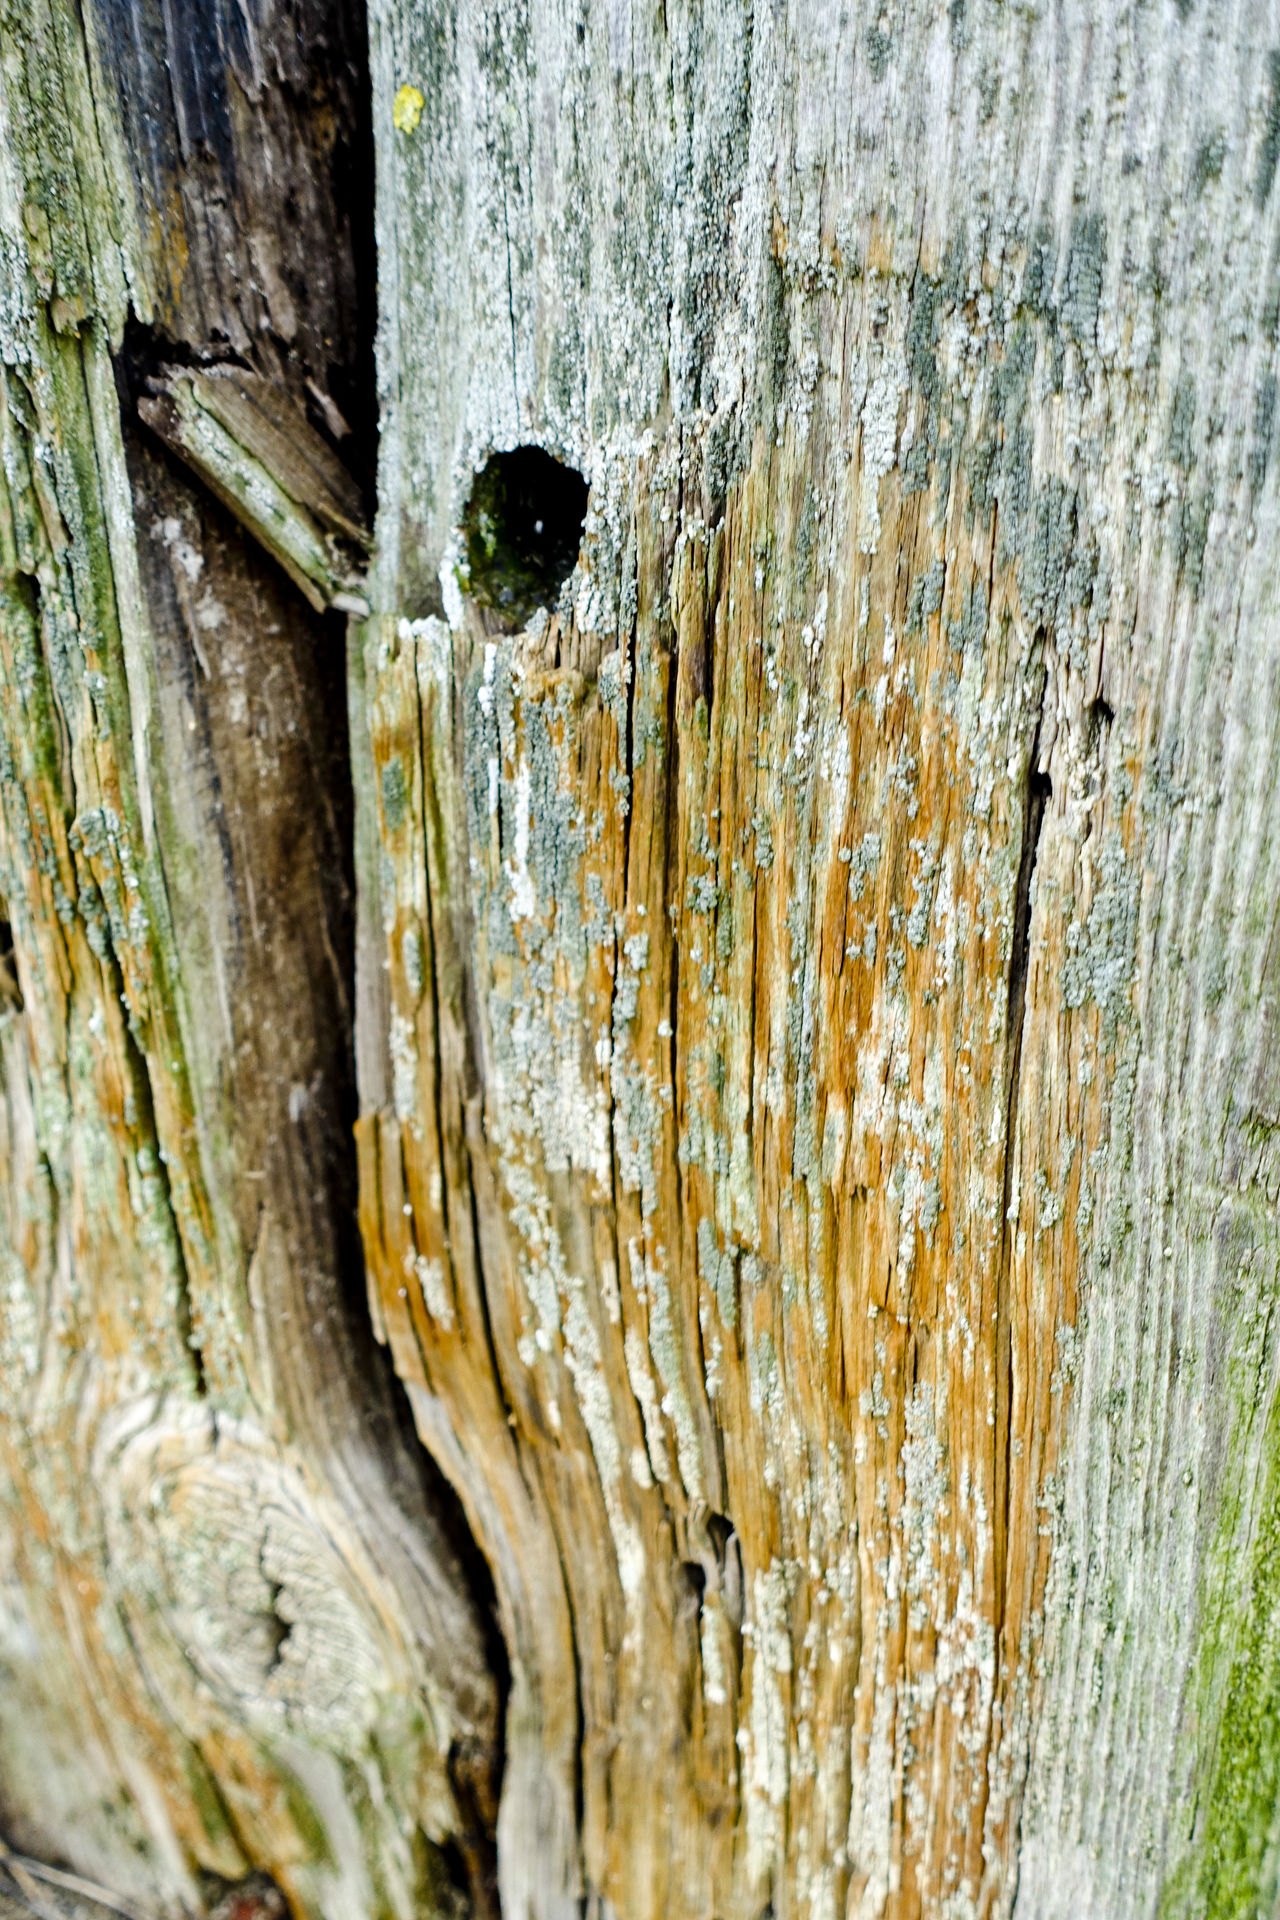 Coloured patterns on a wooden groyne at West Wittering beach in West Sussex Chichester Chichester Harbour Coast Coastline England England, UK England🇬🇧 Groyne Groynes Sea West Sussex West Wittering Wooden